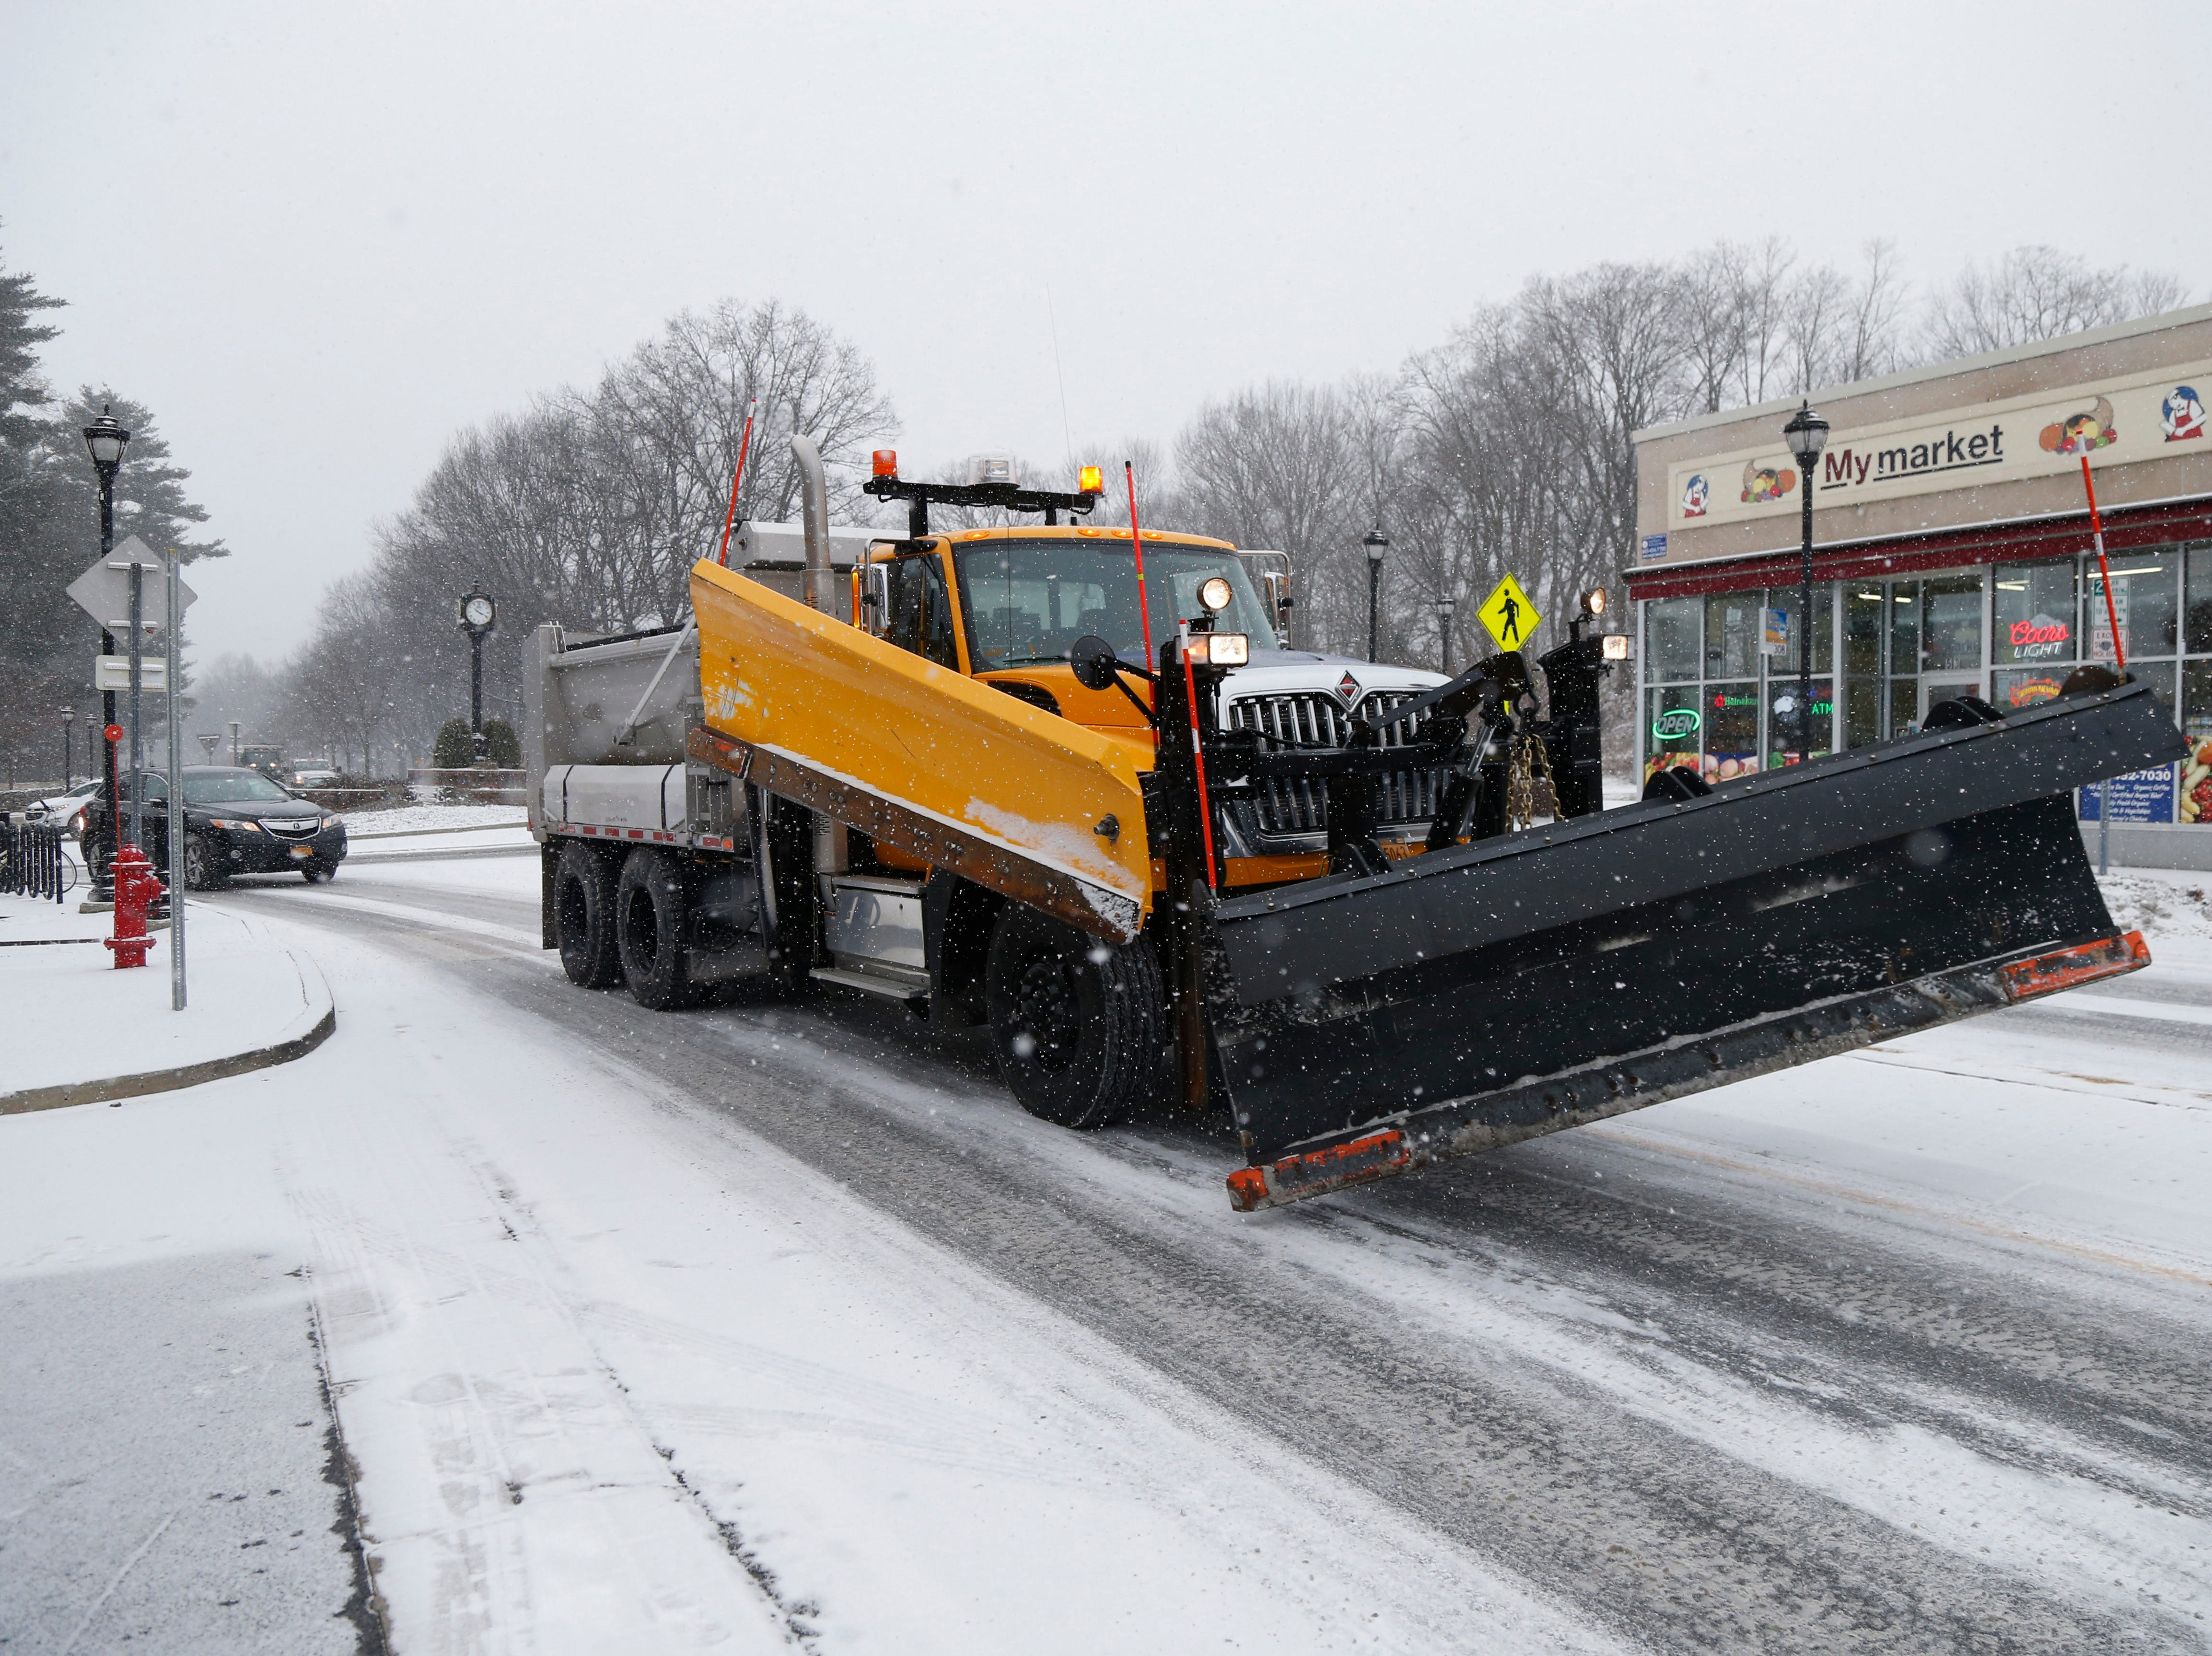 A Town of Poughkeepsie plow spreads salt on Raymond Avenue in the Arlington Business District of the Town of Poughkeepsie on February 12, 2019.